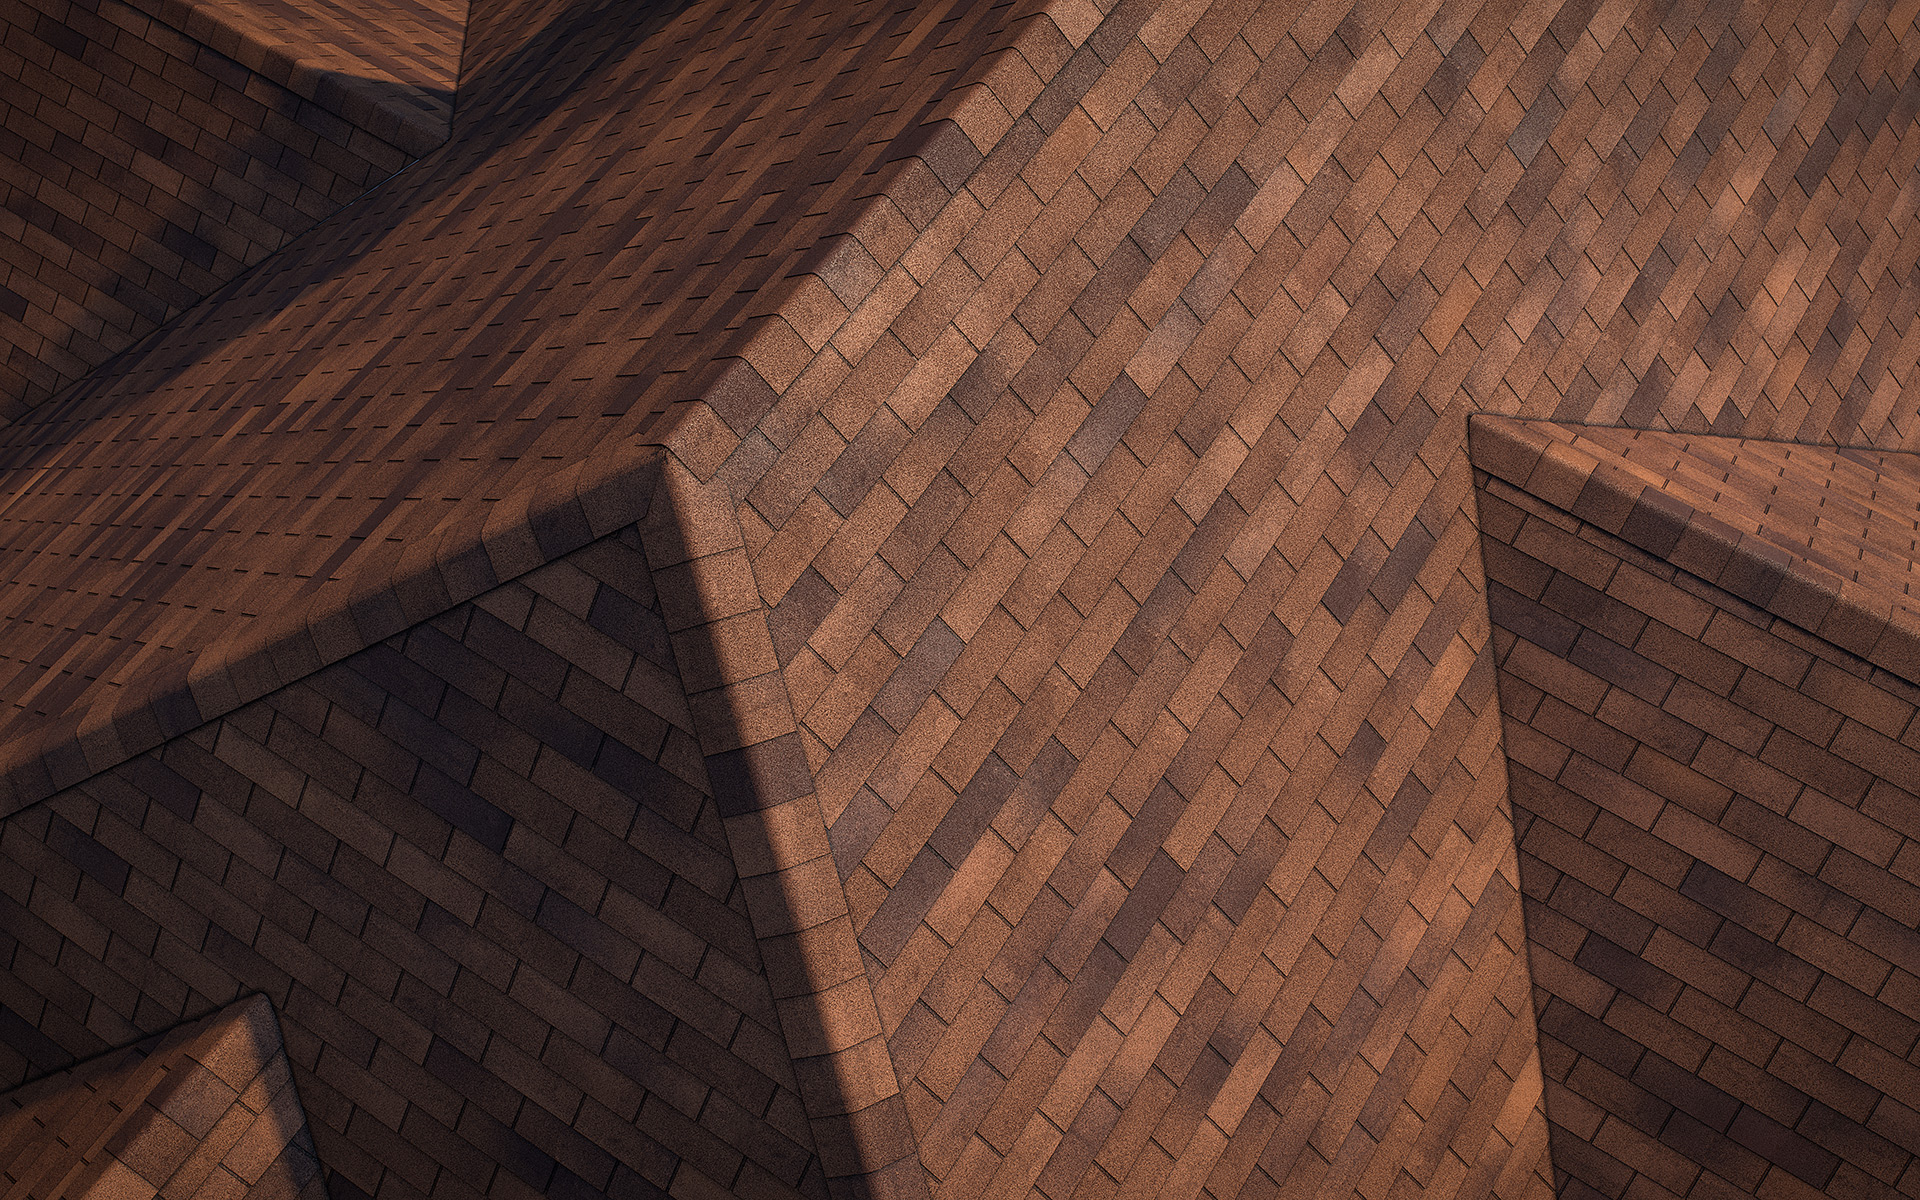 3-tab asphalt roof shingles brown2 color 3D model preset for 3dsmax and RailClone. Rendered with vray, made for arch-viz.